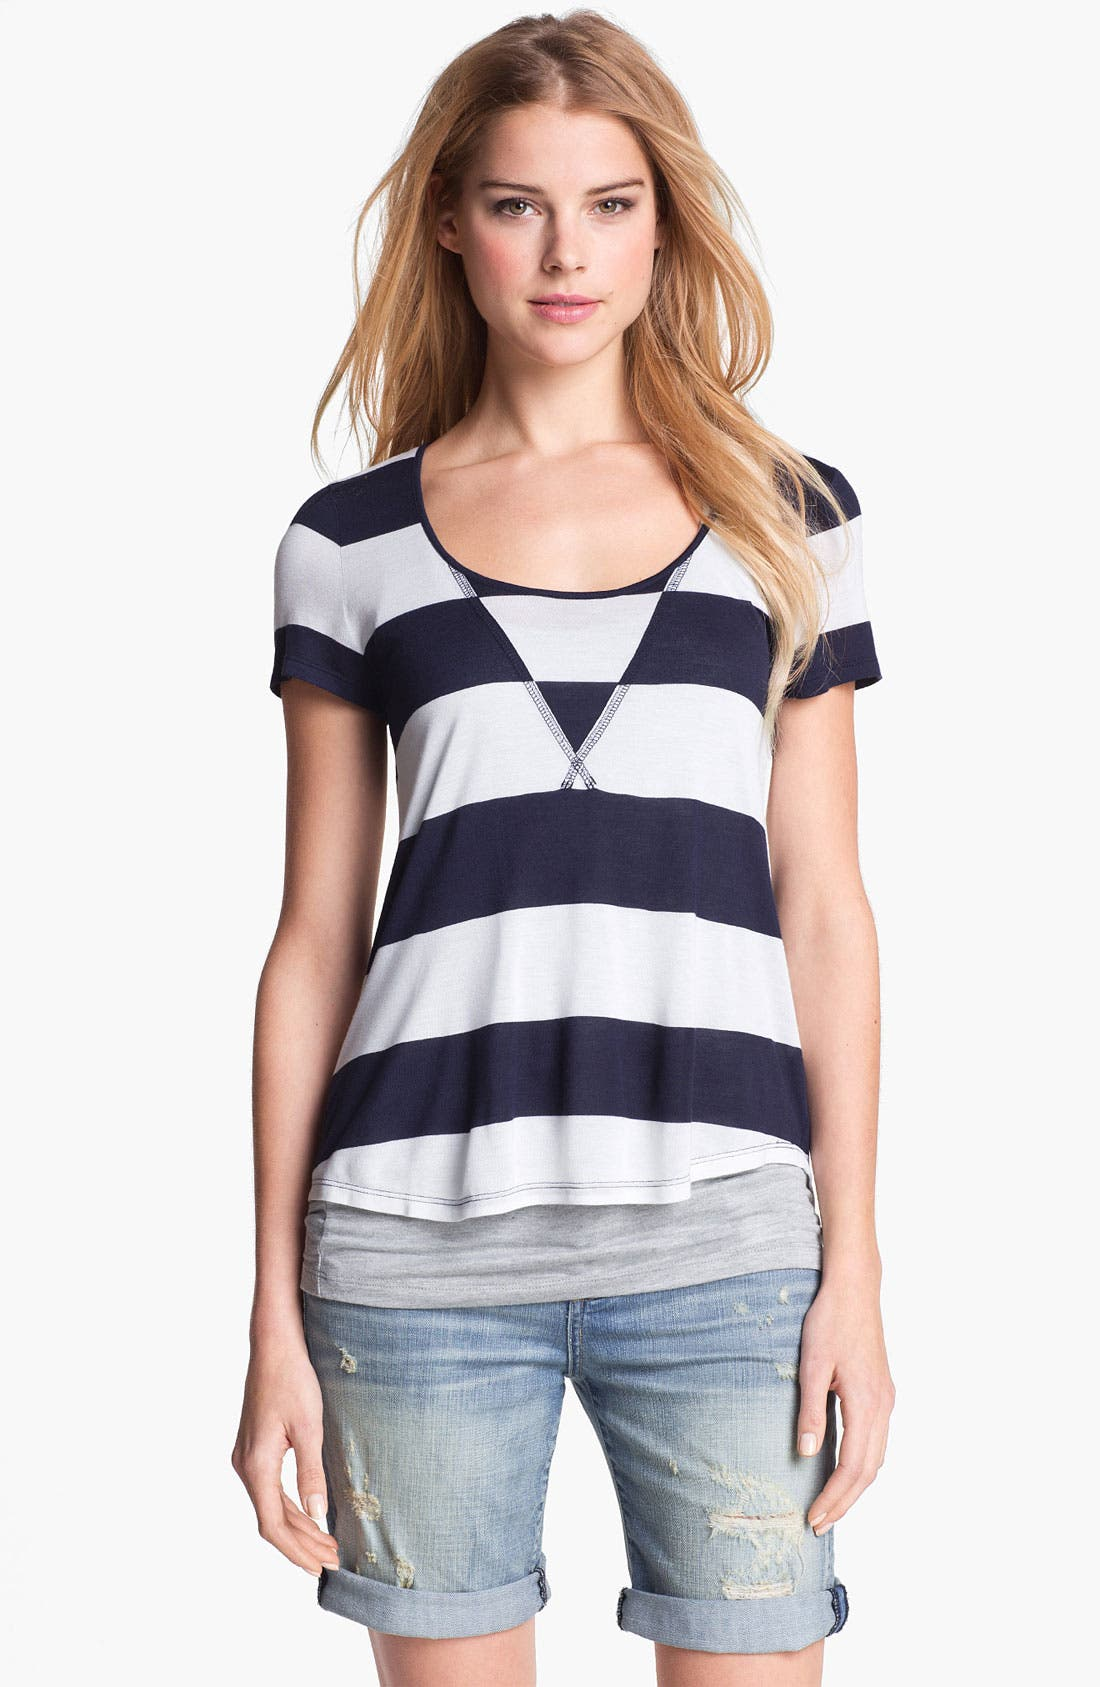 Main Image - Two by Vince Camuto 'Cabana' Stripe Tee